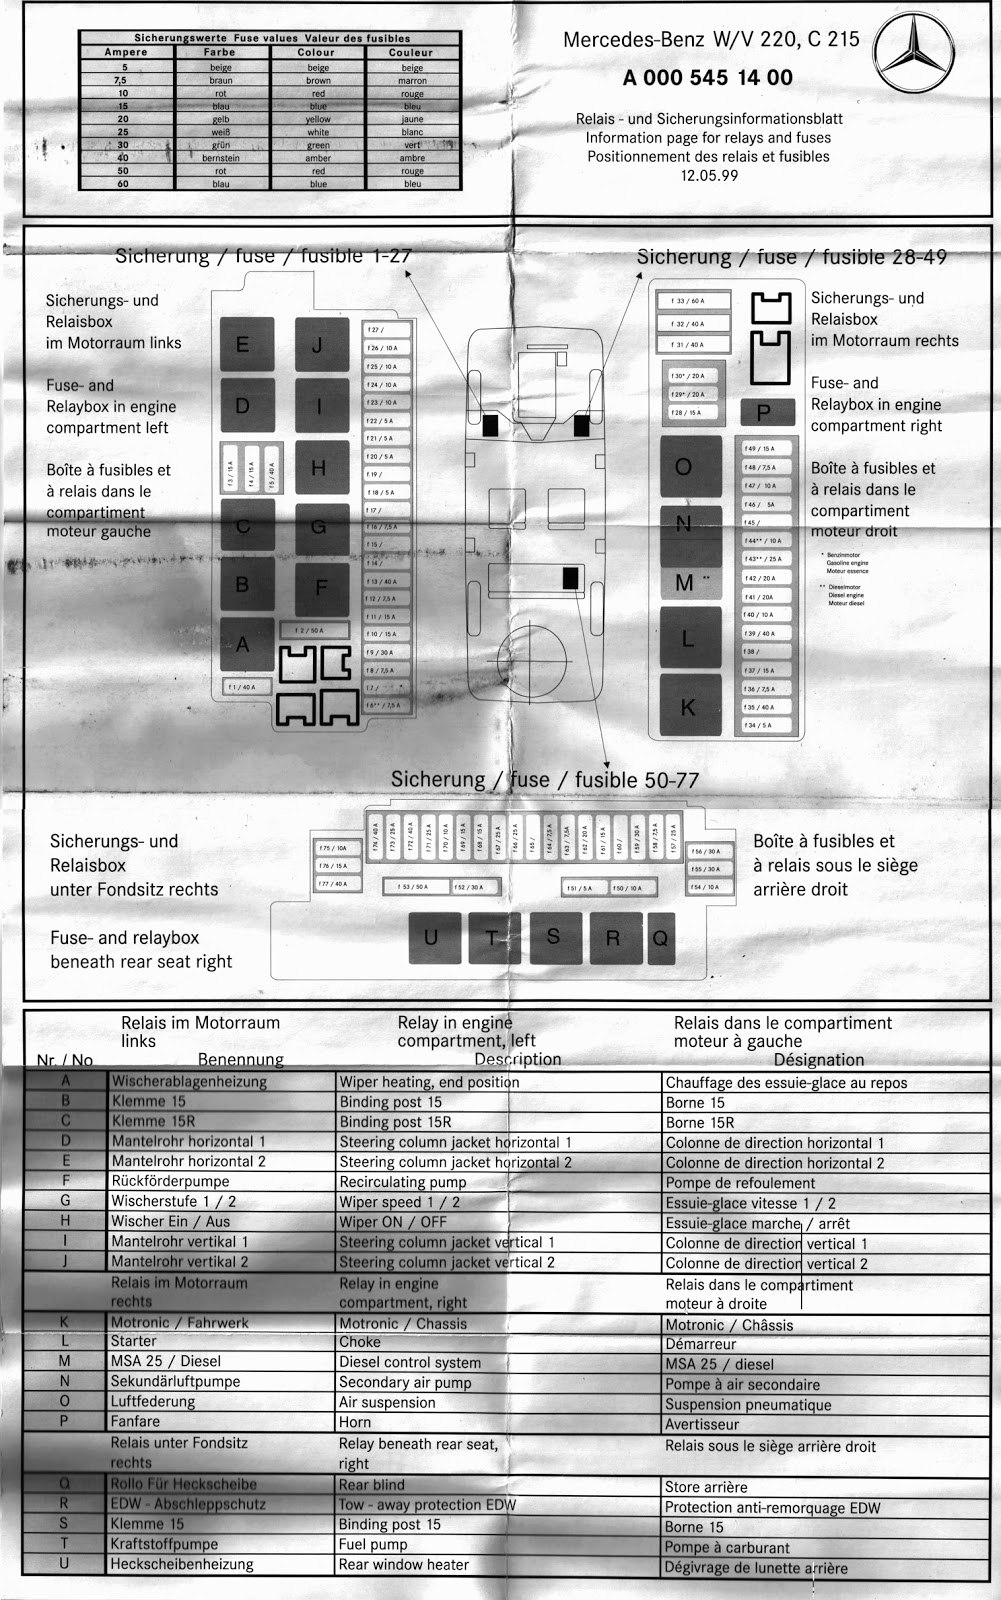 Diagram 2005 Mercedes C320 Fuse Box Diagram Full Version Hd Quality Box Diagram Diagramkwake Avvocatomariazingaropoli It